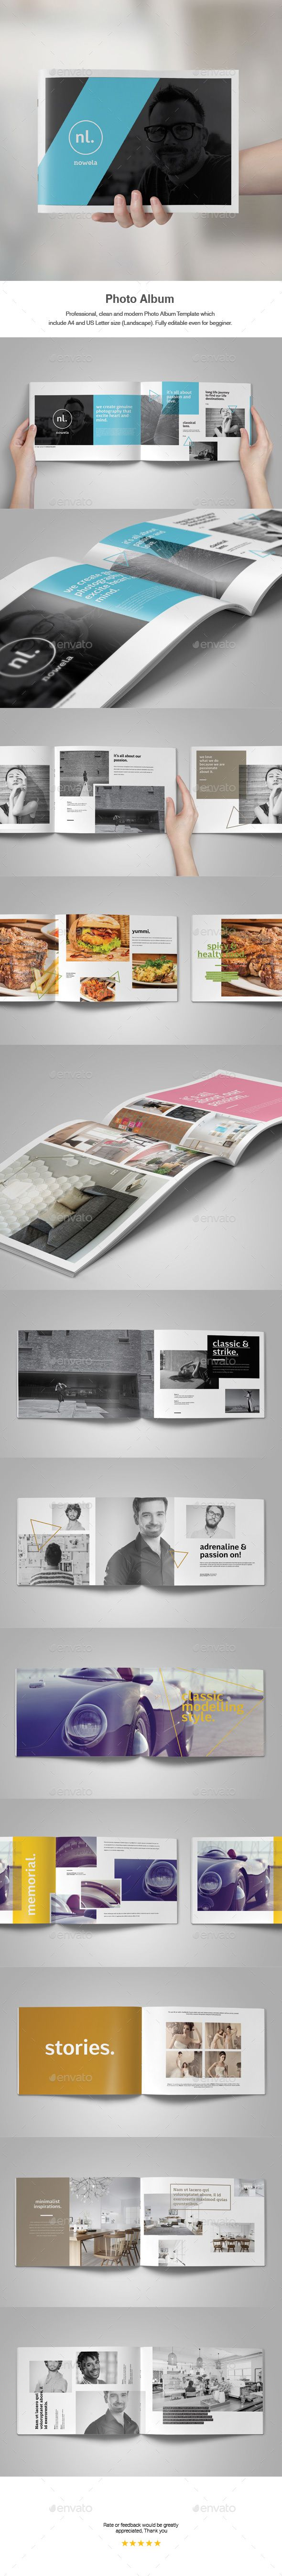 Photo Album Template  — InDesign Template #decor #portfolio • Download ➝ https://graphicriver.net/item/photo-album-template/18240535?ref=pxcr